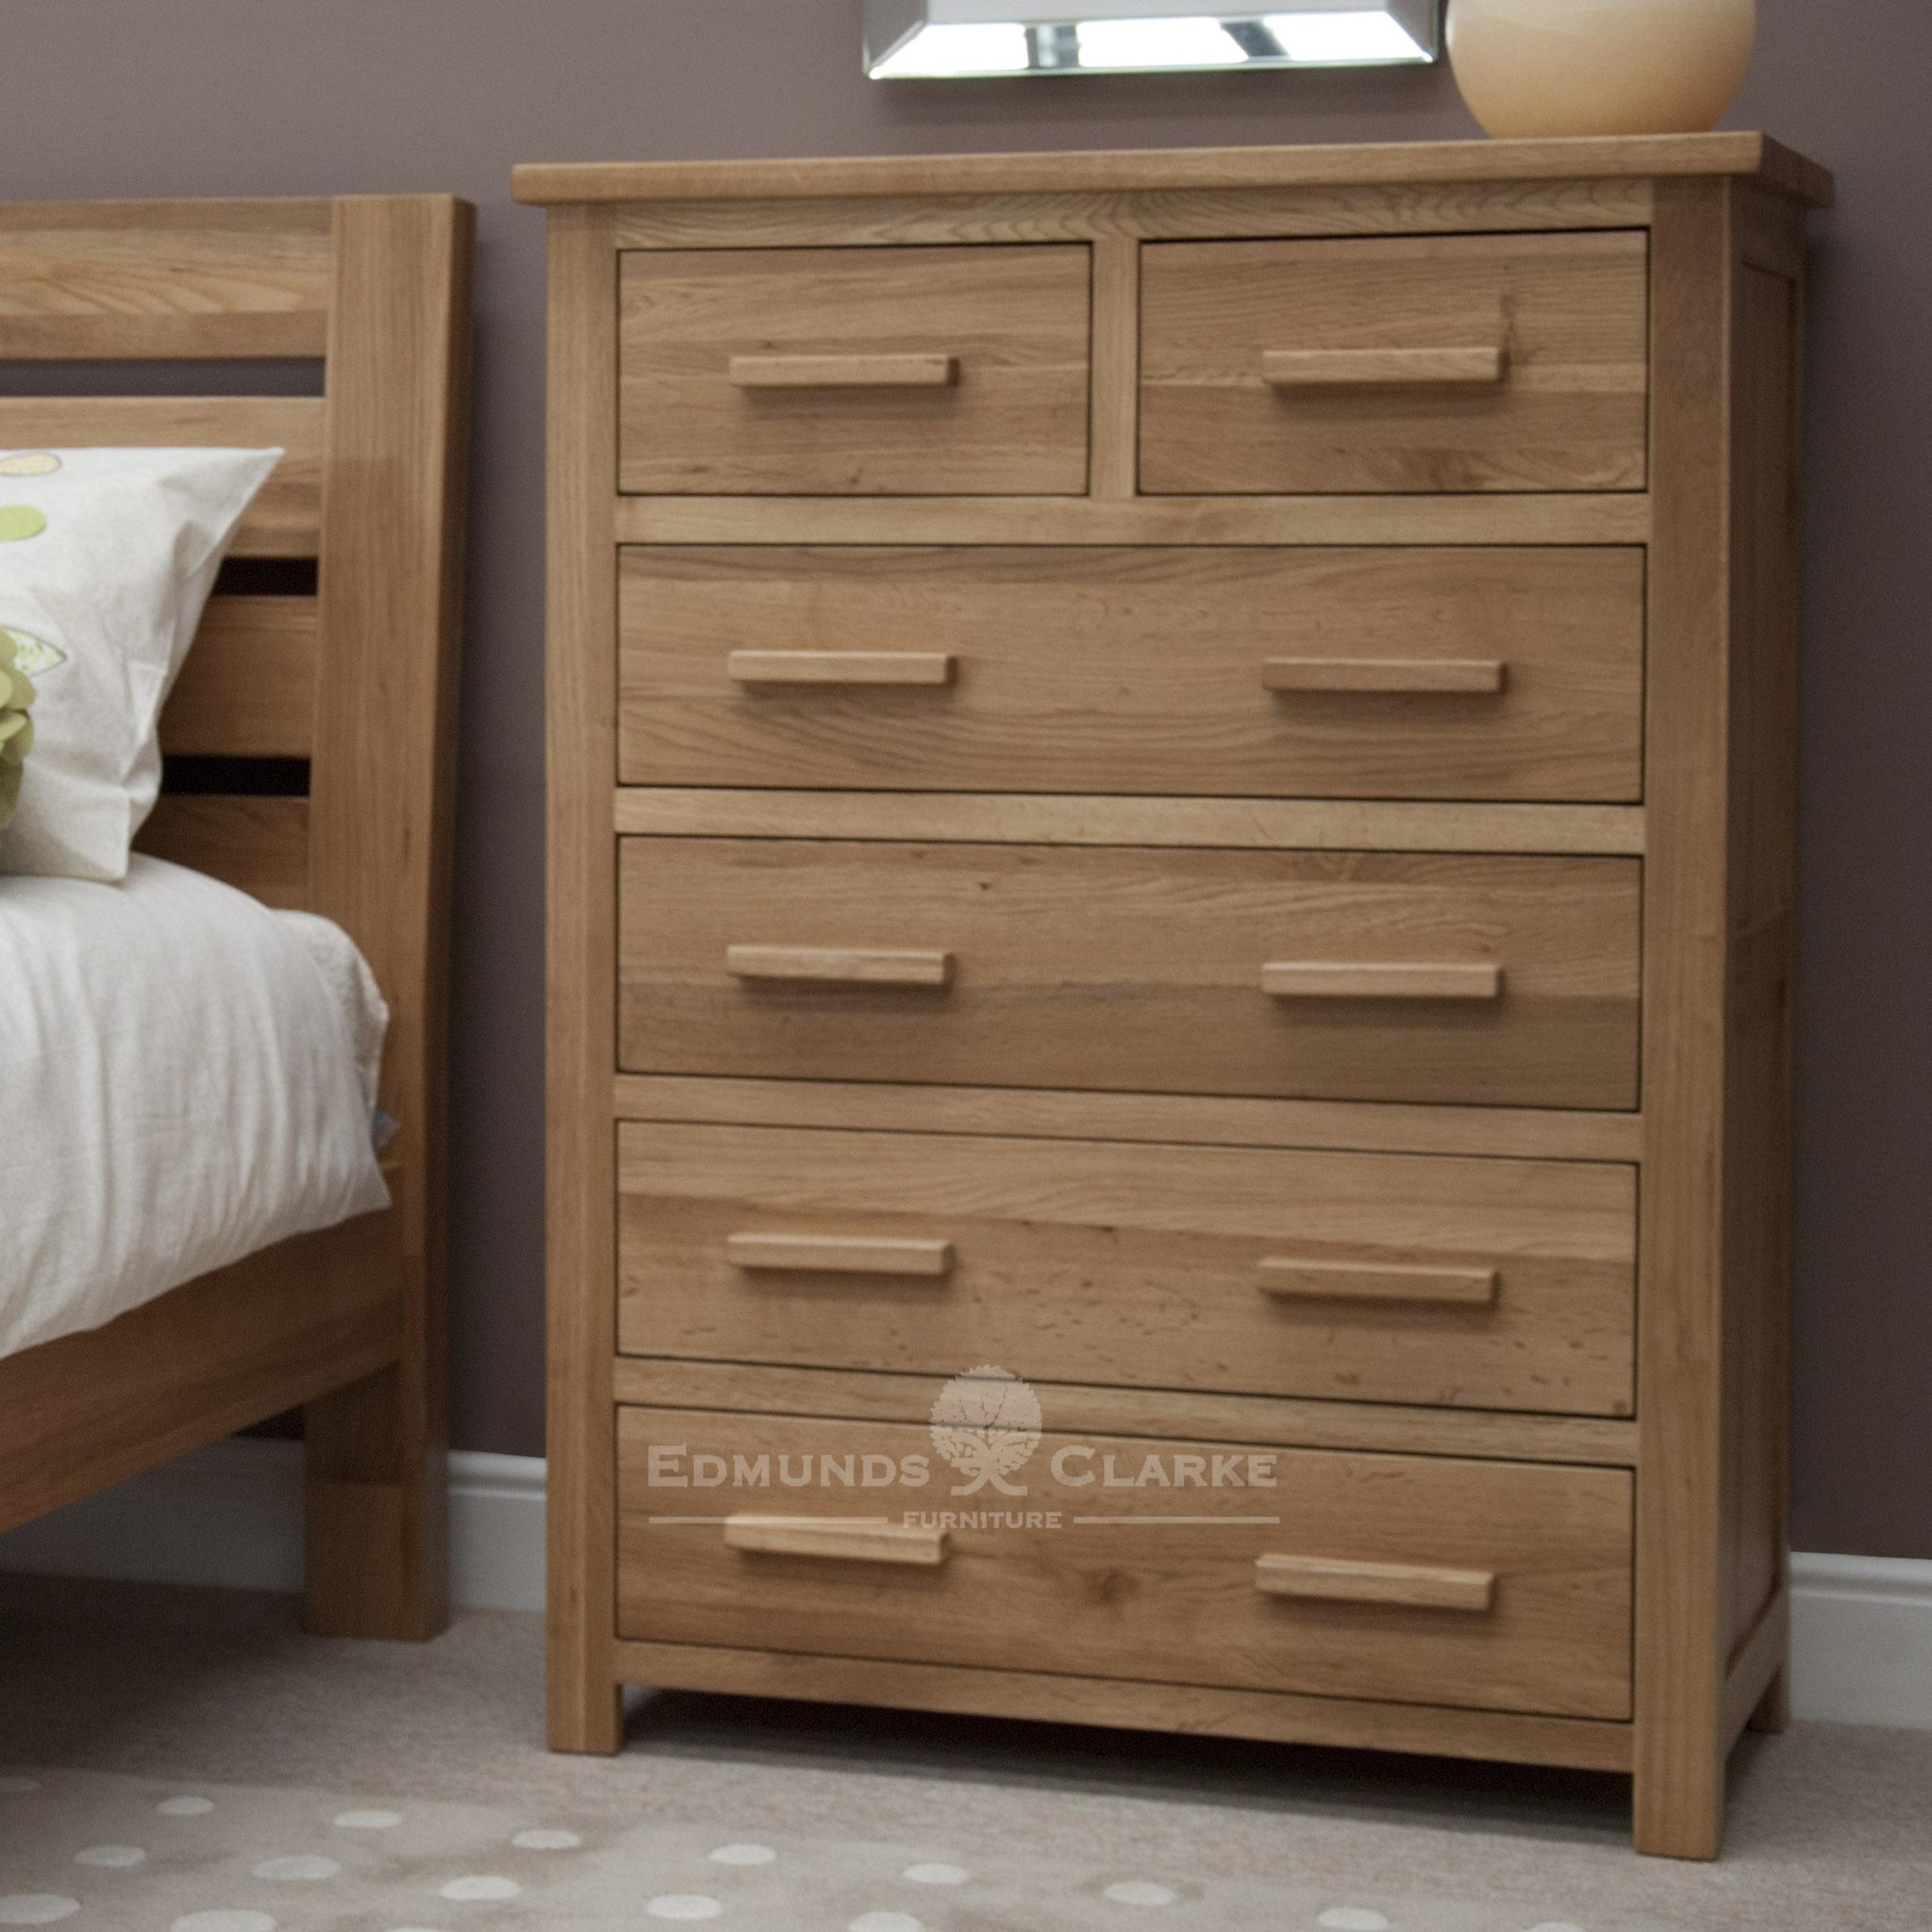 Bury Solid Oak 6 drawer chest. two drawers at the top and 4 long drawer underneath. light lacquered oak finish with choice of metal or wood bar handles